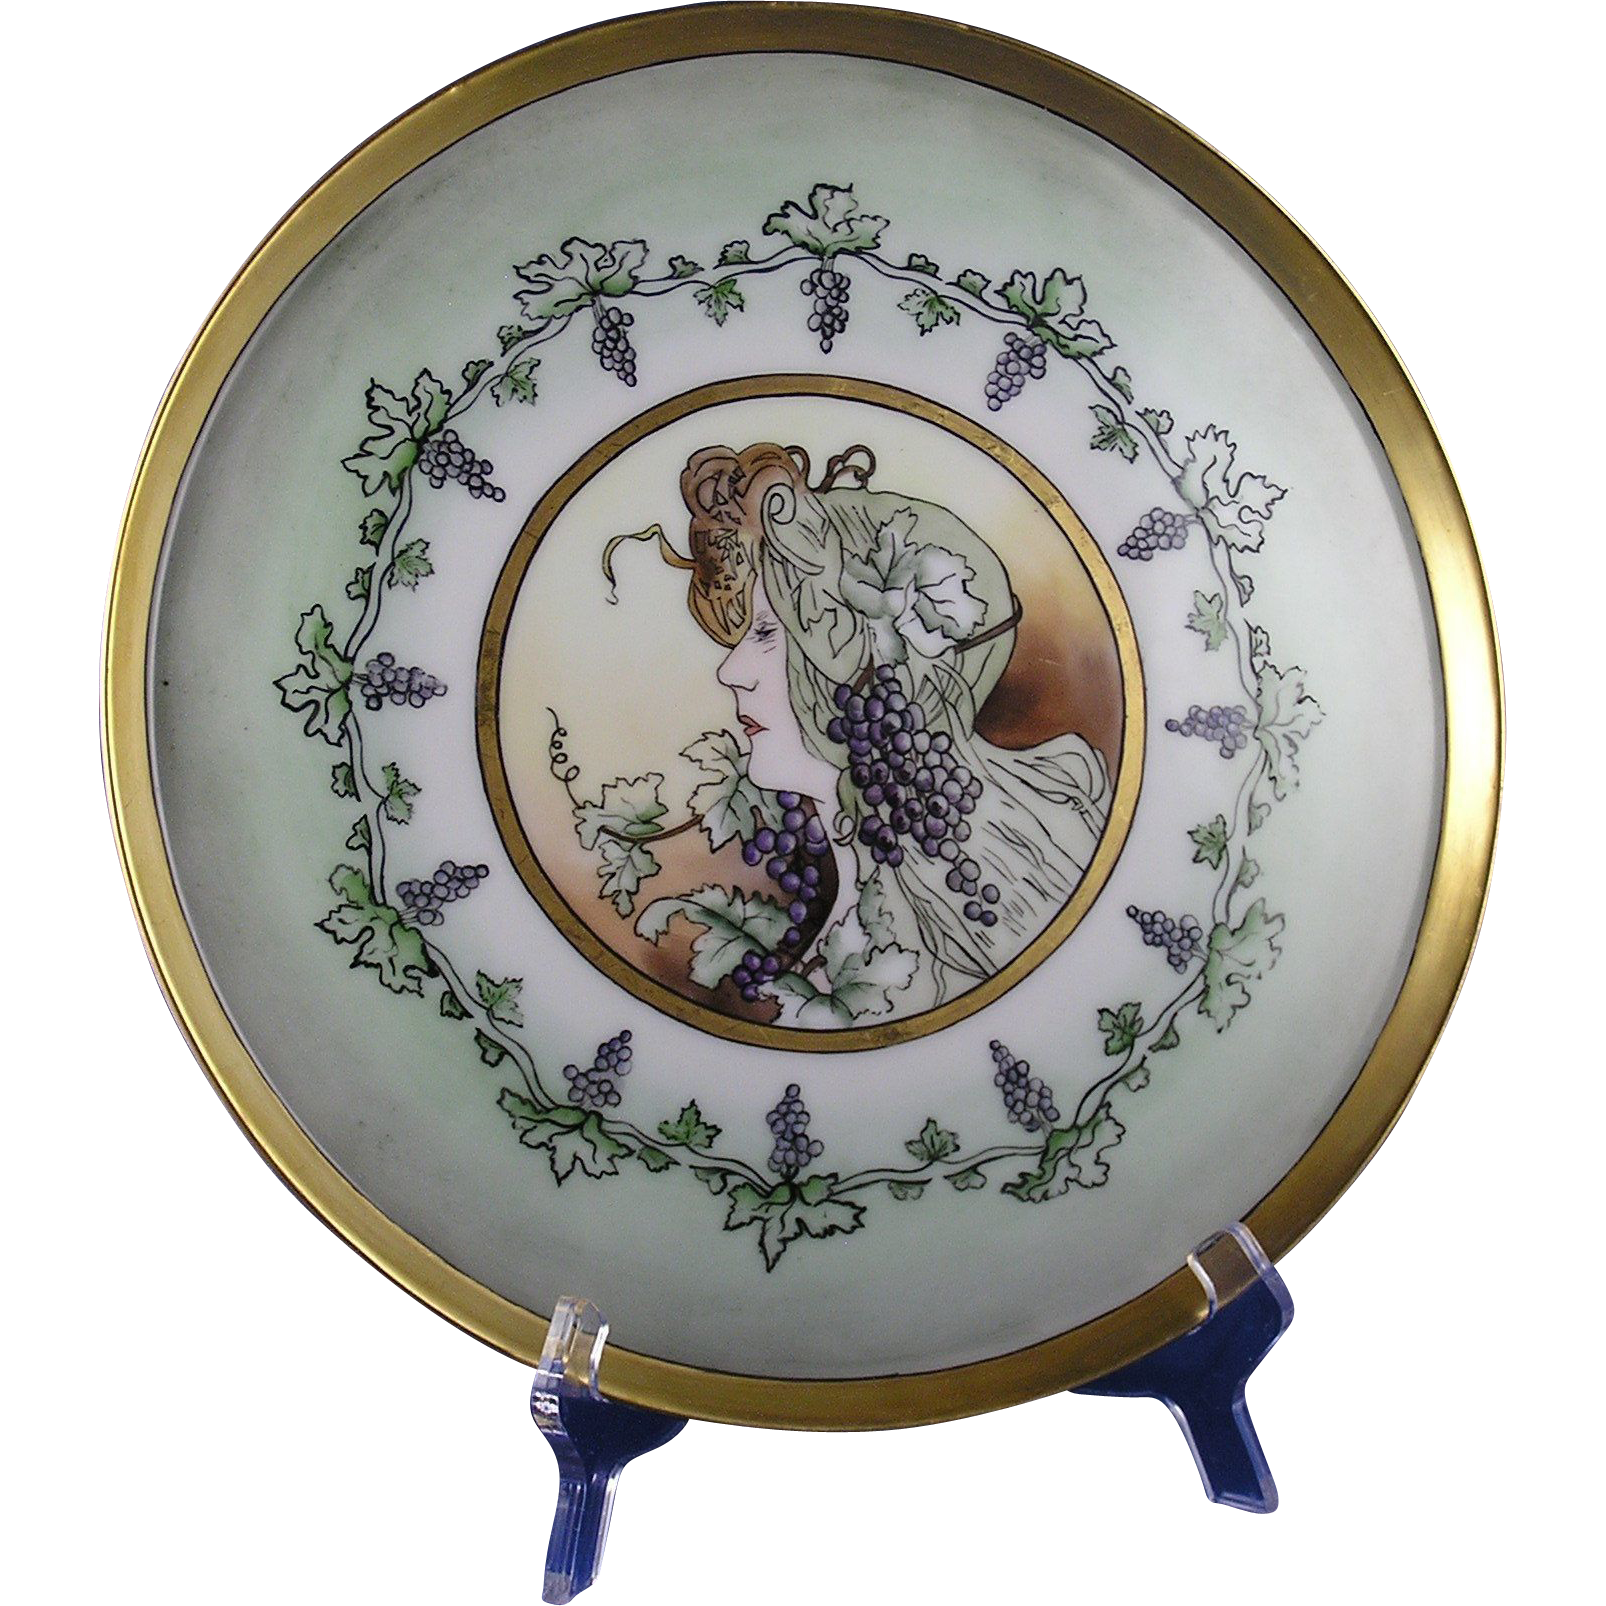 Tressemann & Vogt (T&V) Limoges Grapes Mucha Style Tray/Plate (c.1892-1907)